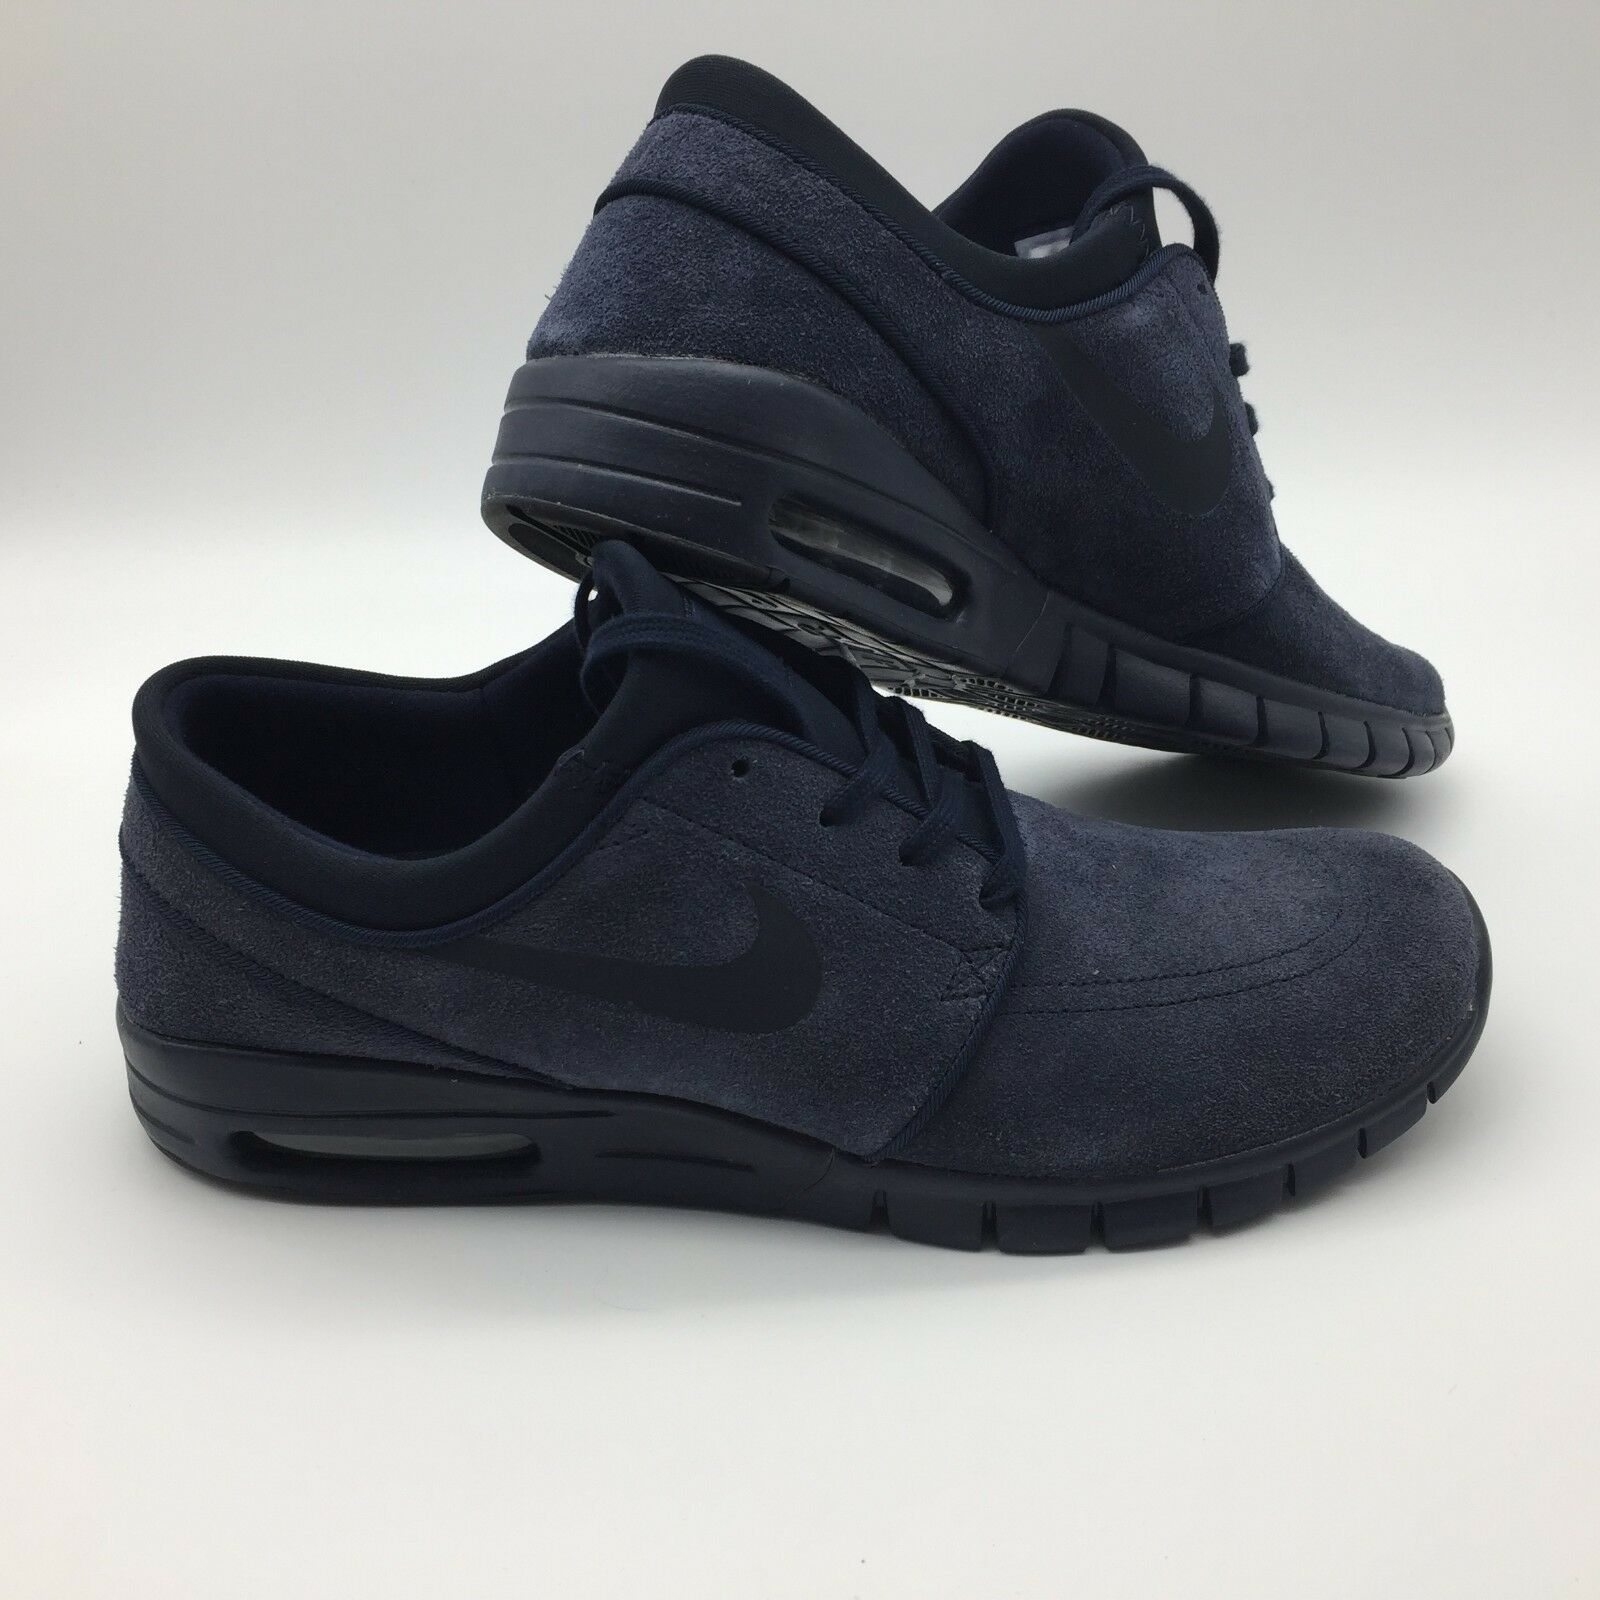 Nike homme L chaussures